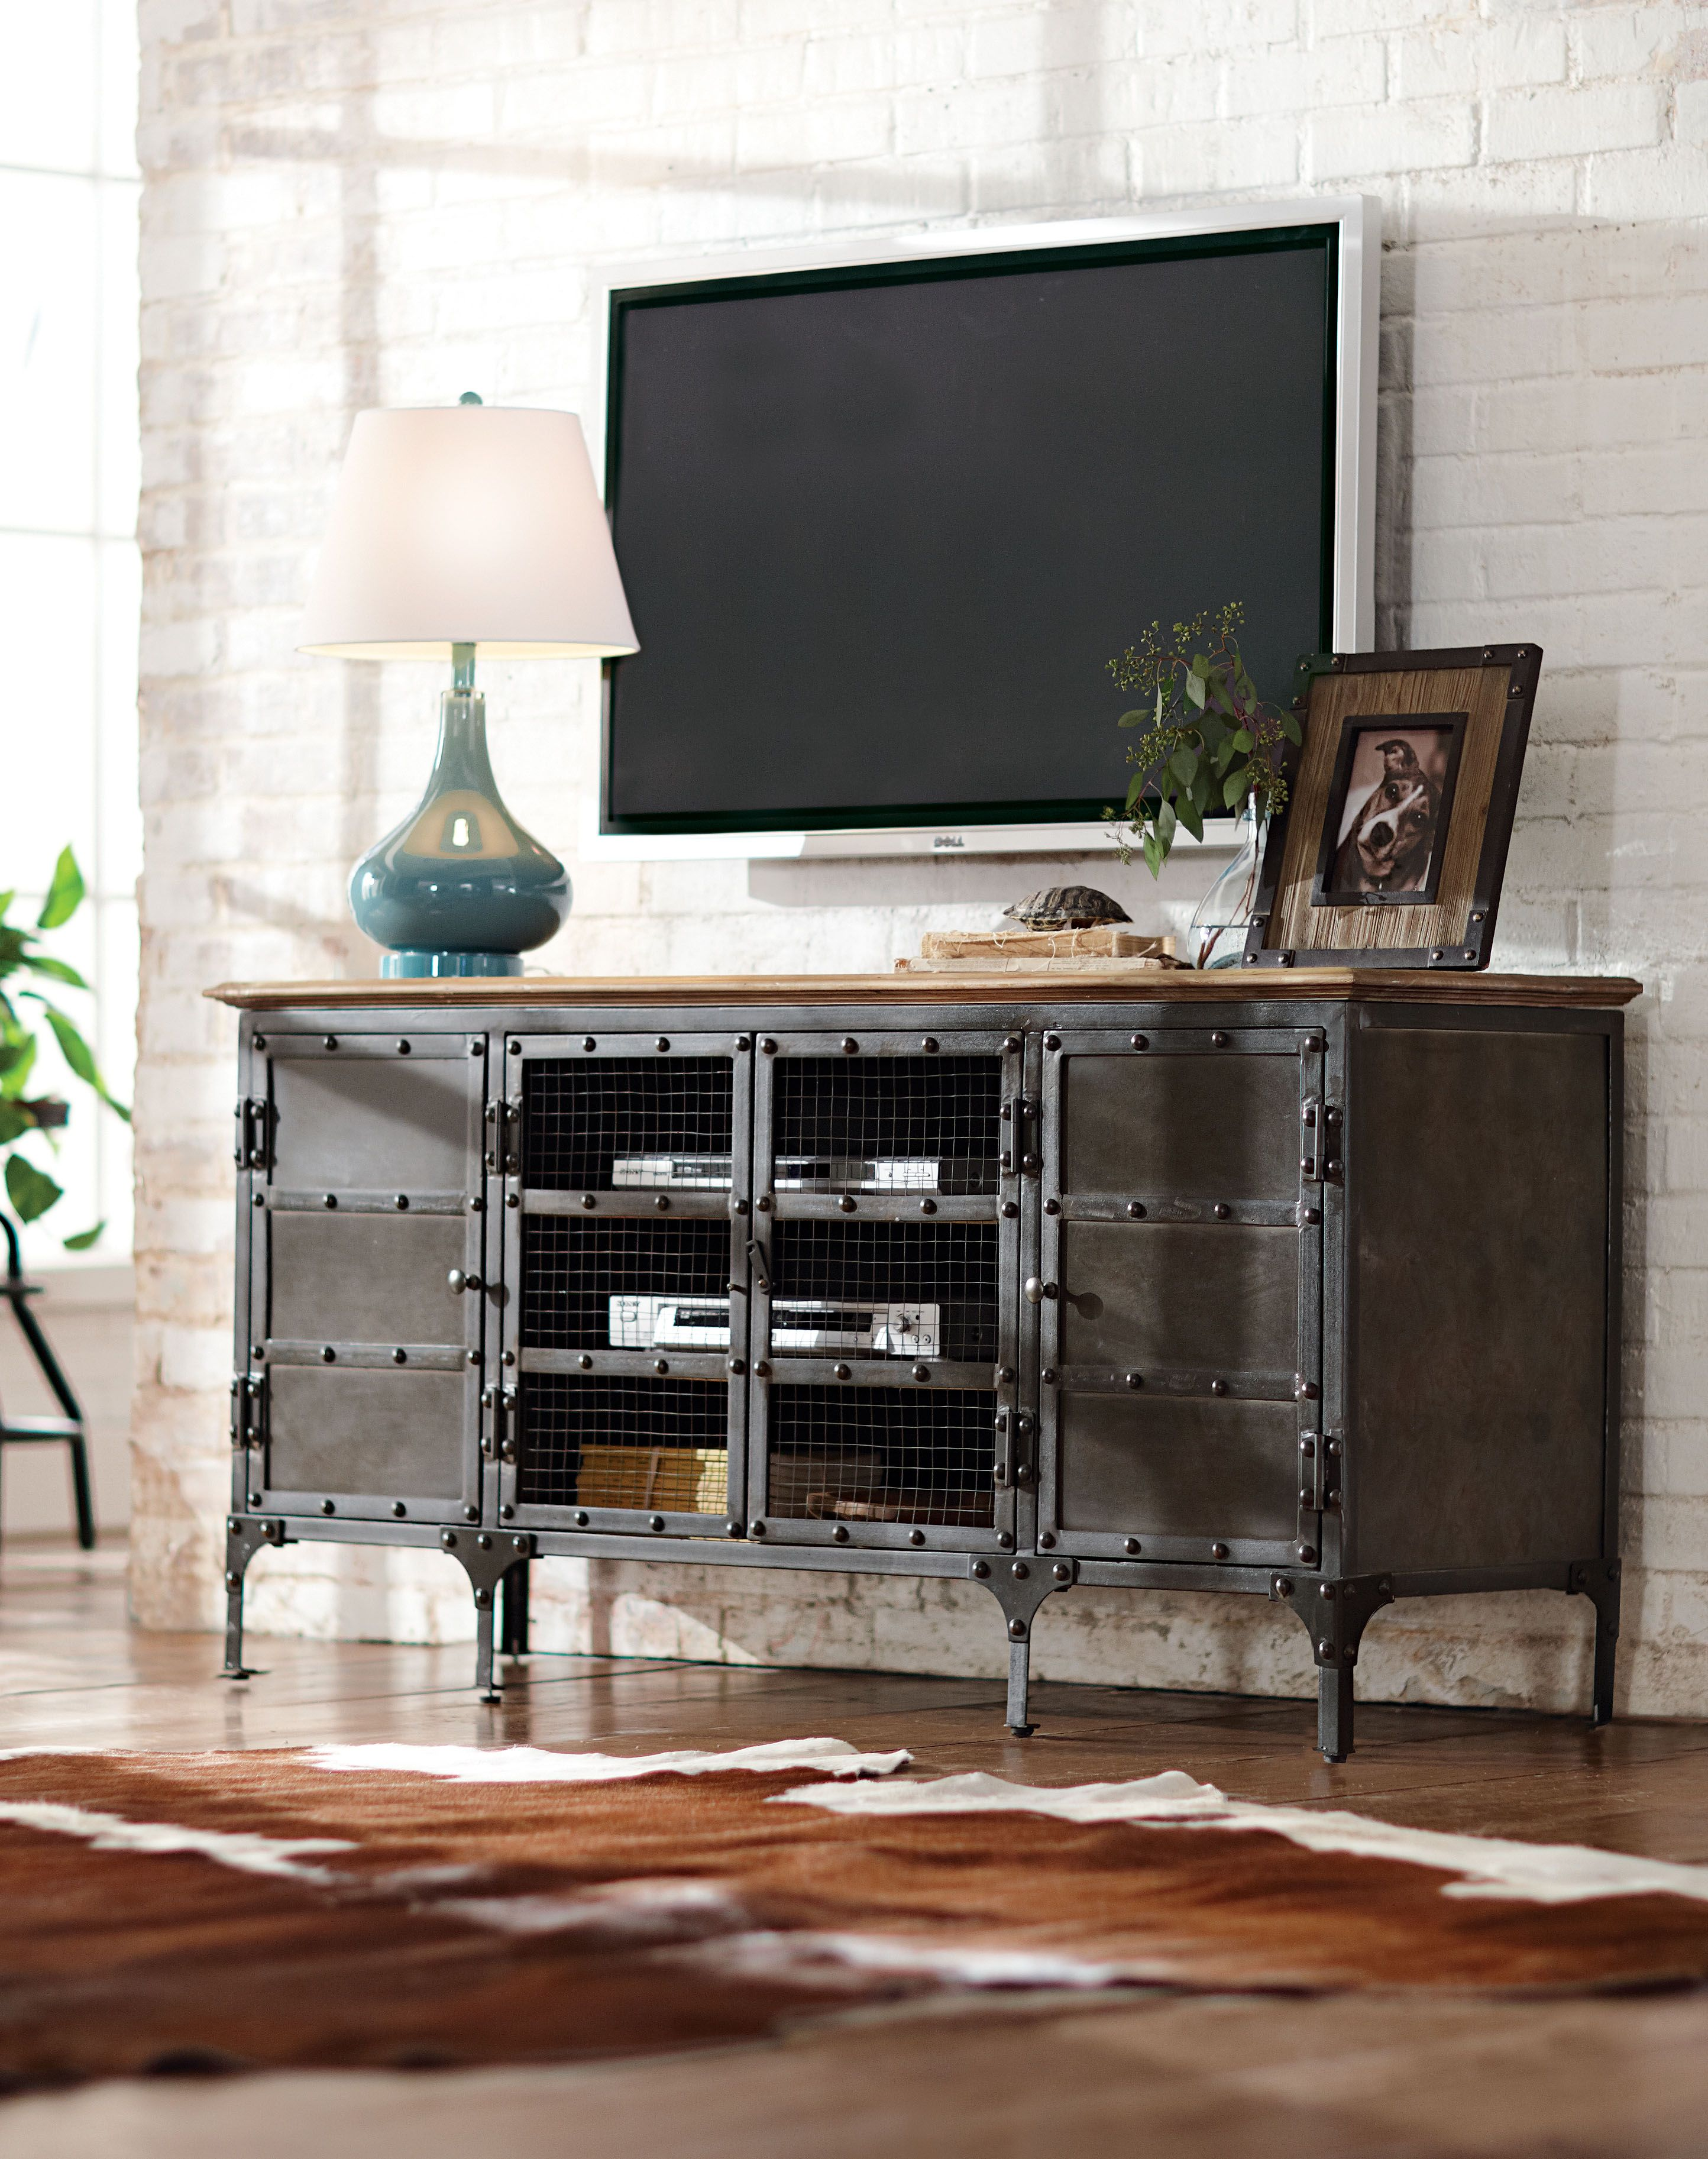 Tv Stand Made Stylish It 39 S The Perfect Complement To An Industrial Living Room And Makes The Tv